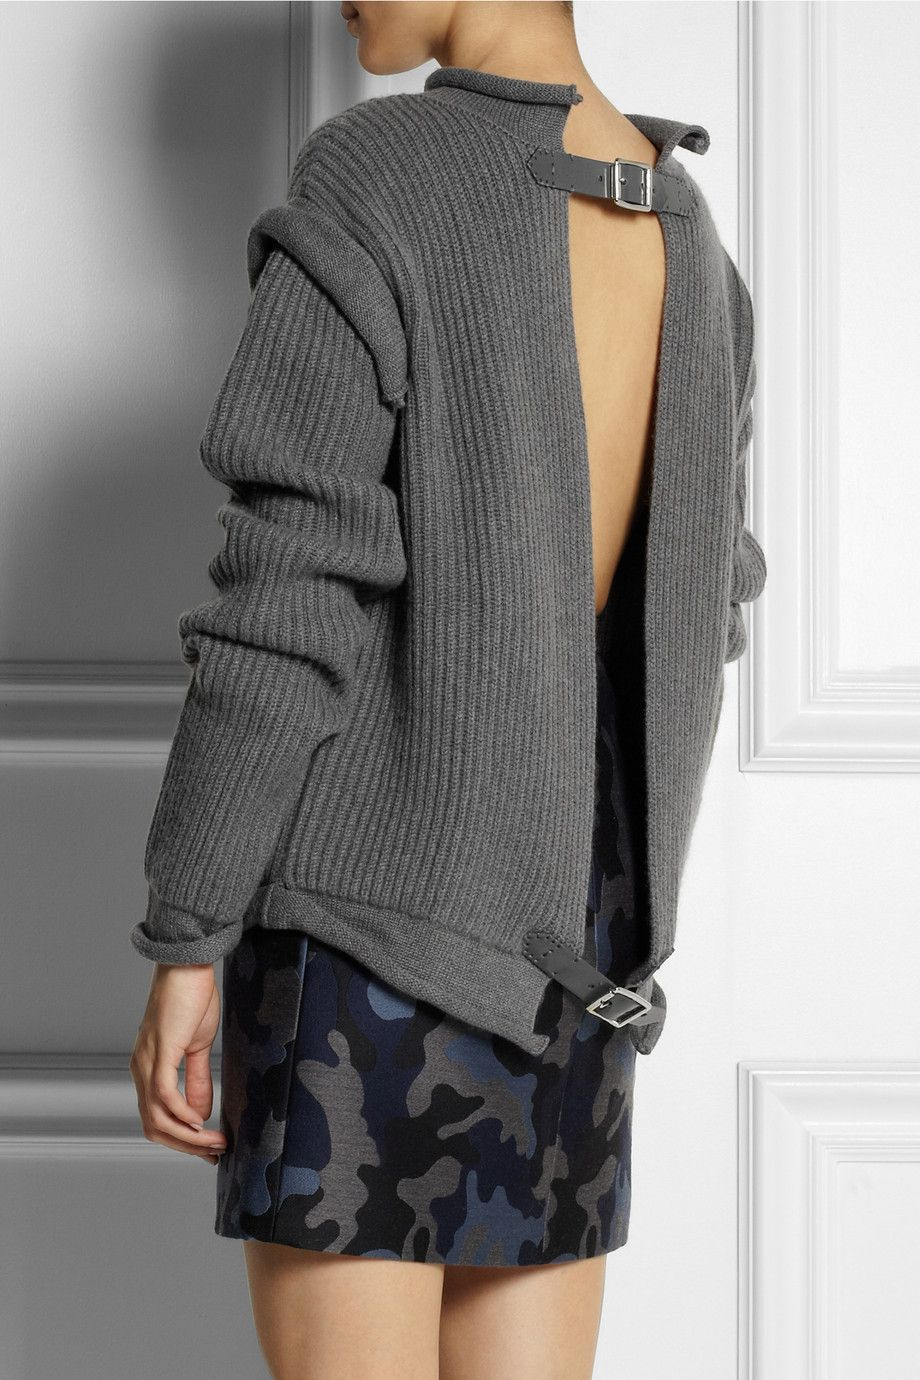 Christopher Kane | Oversized cashmere open-back sweater | NET-A ...